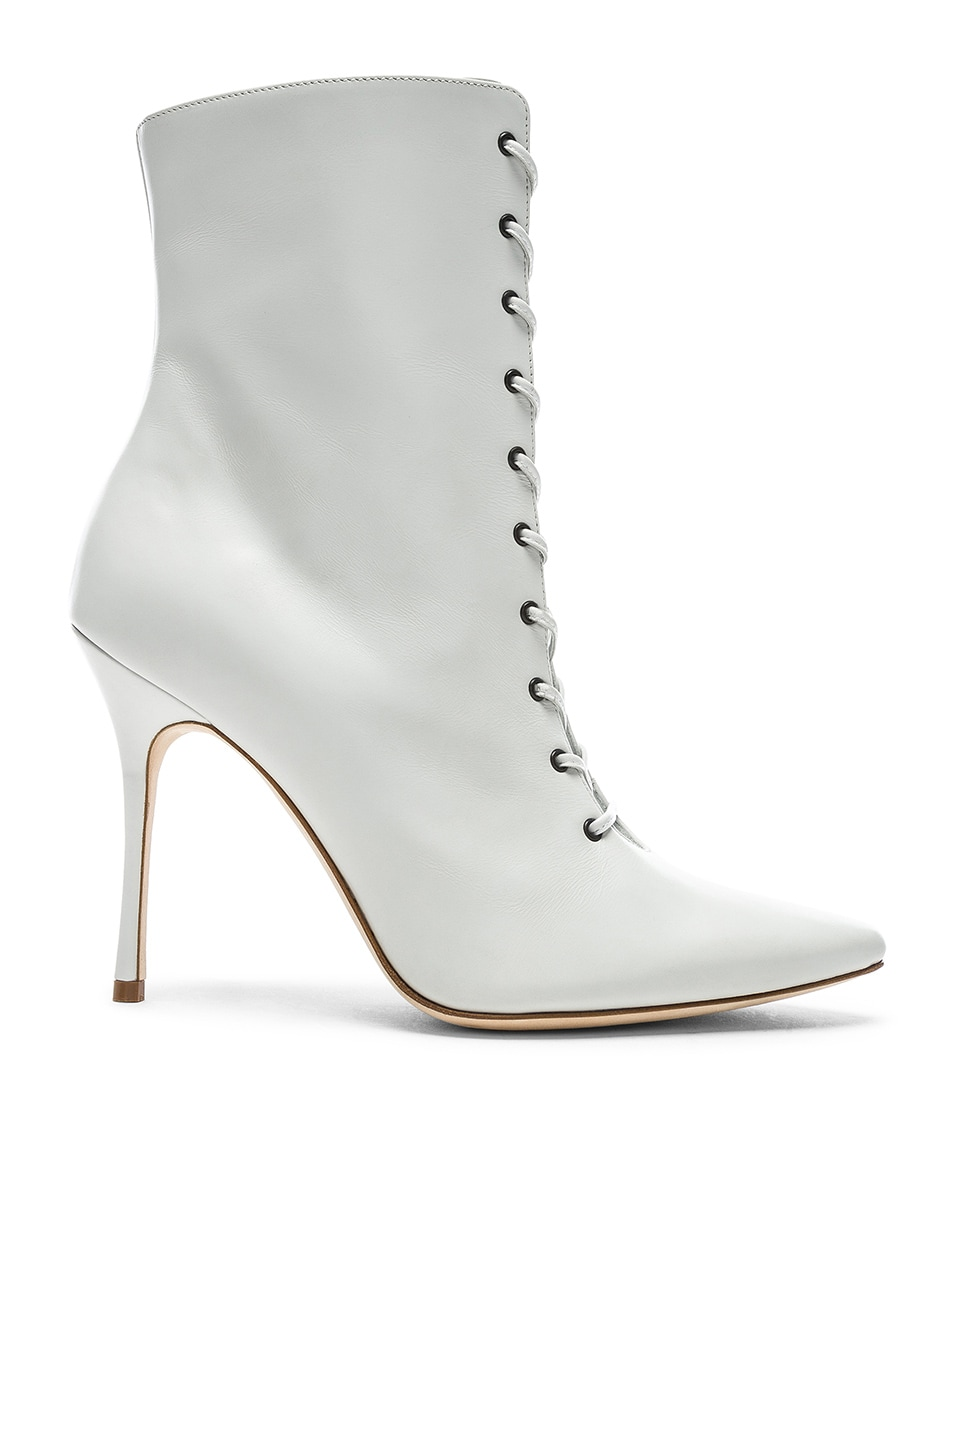 Image 1 of Manolo Blahnik Leather Bordin Booties in White